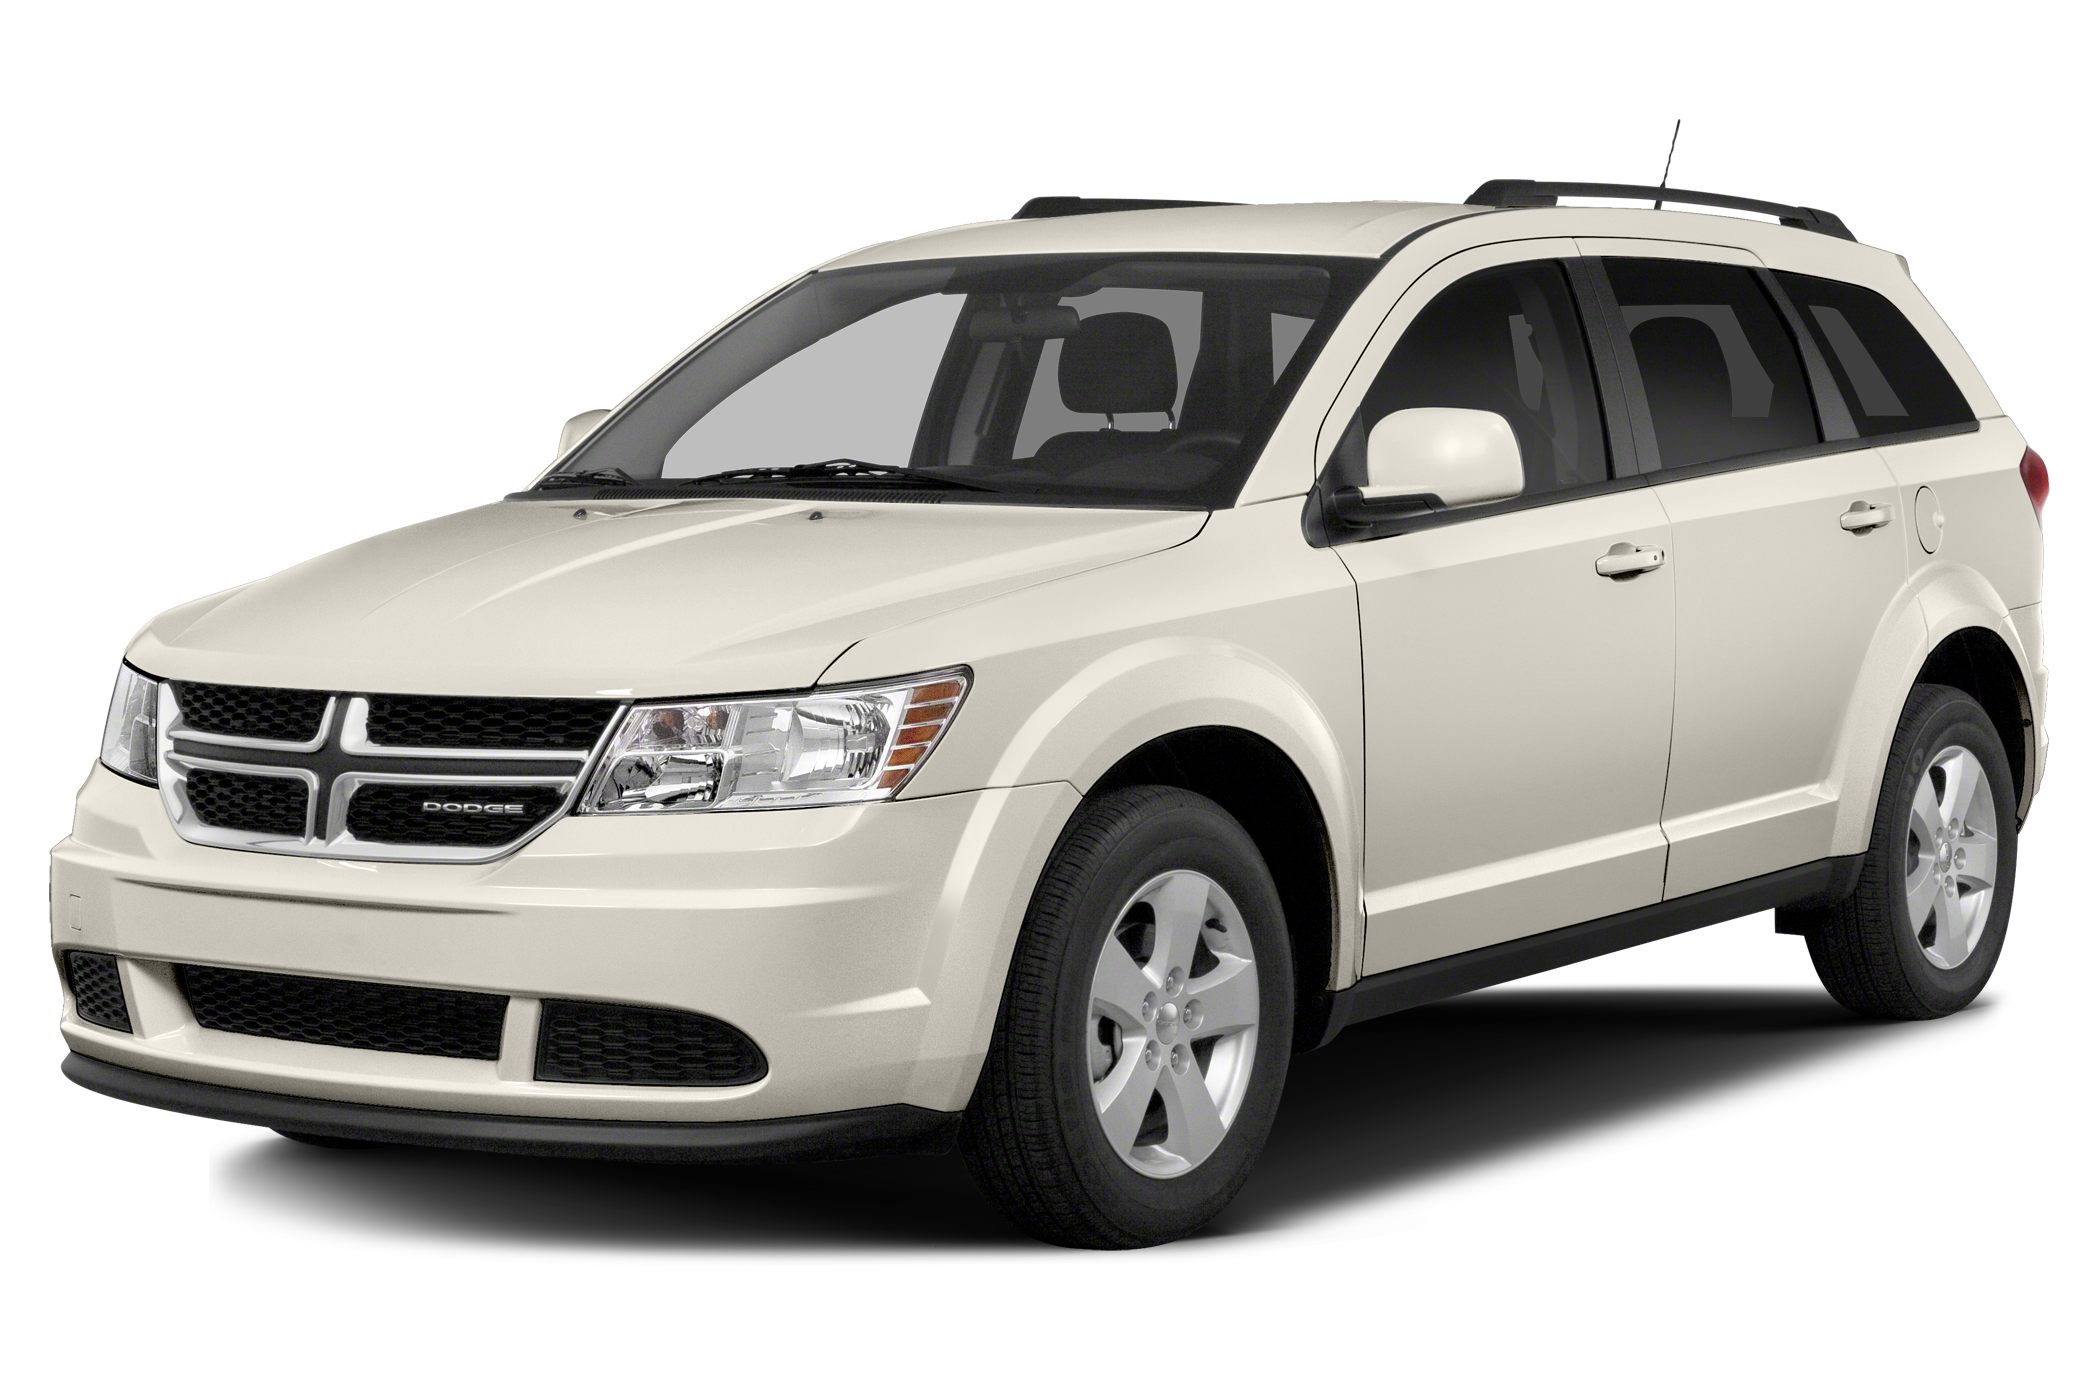 2015 Dodge Journey SXT SUV for sale in Tacoma for $33,270 with 12 miles.